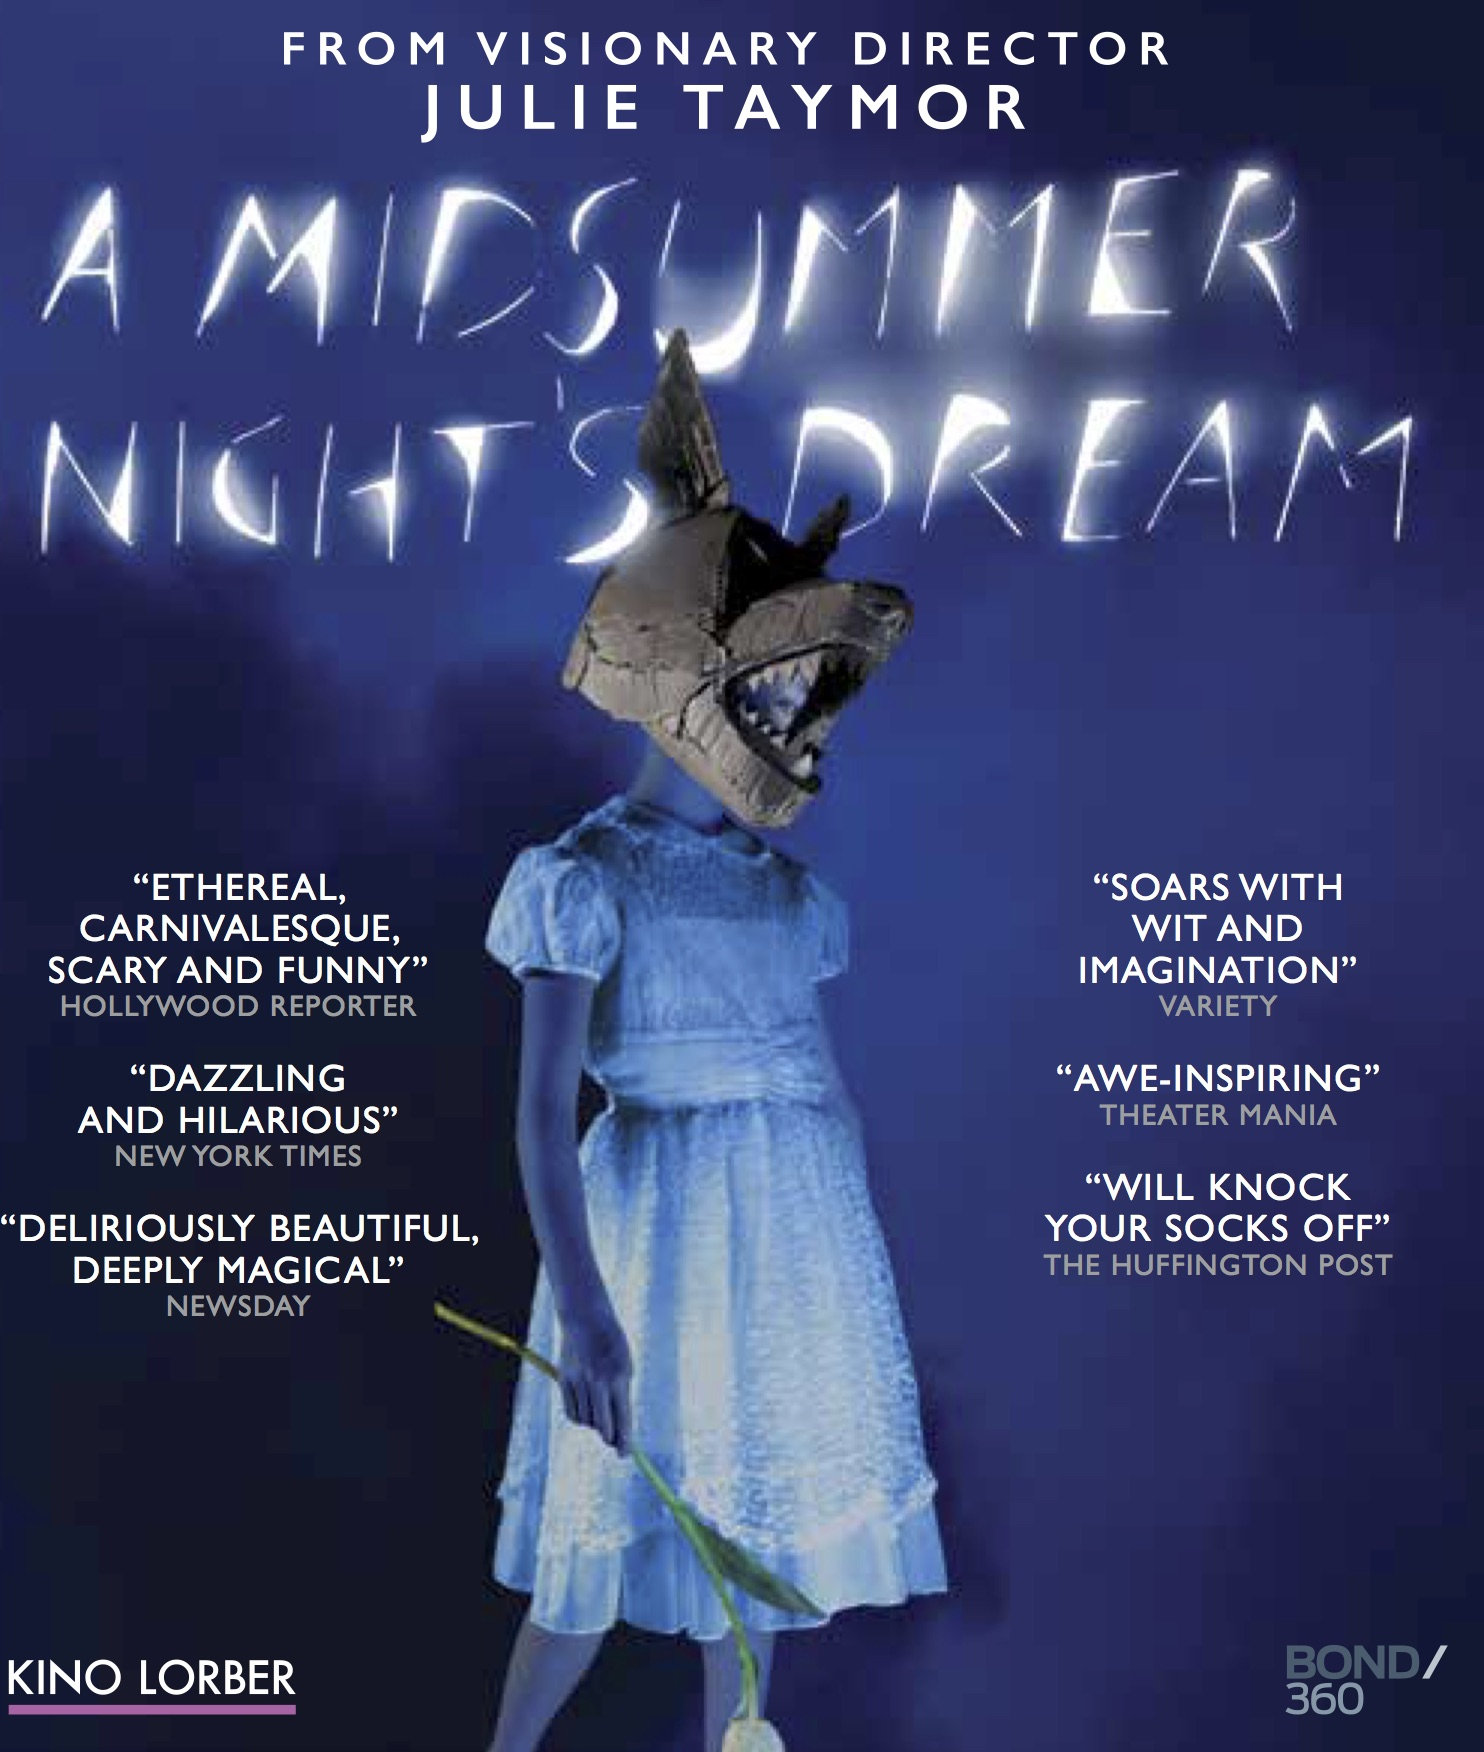 a midsummer night s dream the A midsummer night's dream 1h 45min   comedy , fantasy   13 july 2018 (usa) mistaken identity, unrequited love, and the supernatural are combined in shakespeare's classic set in the woods of greece on a moonlit night.